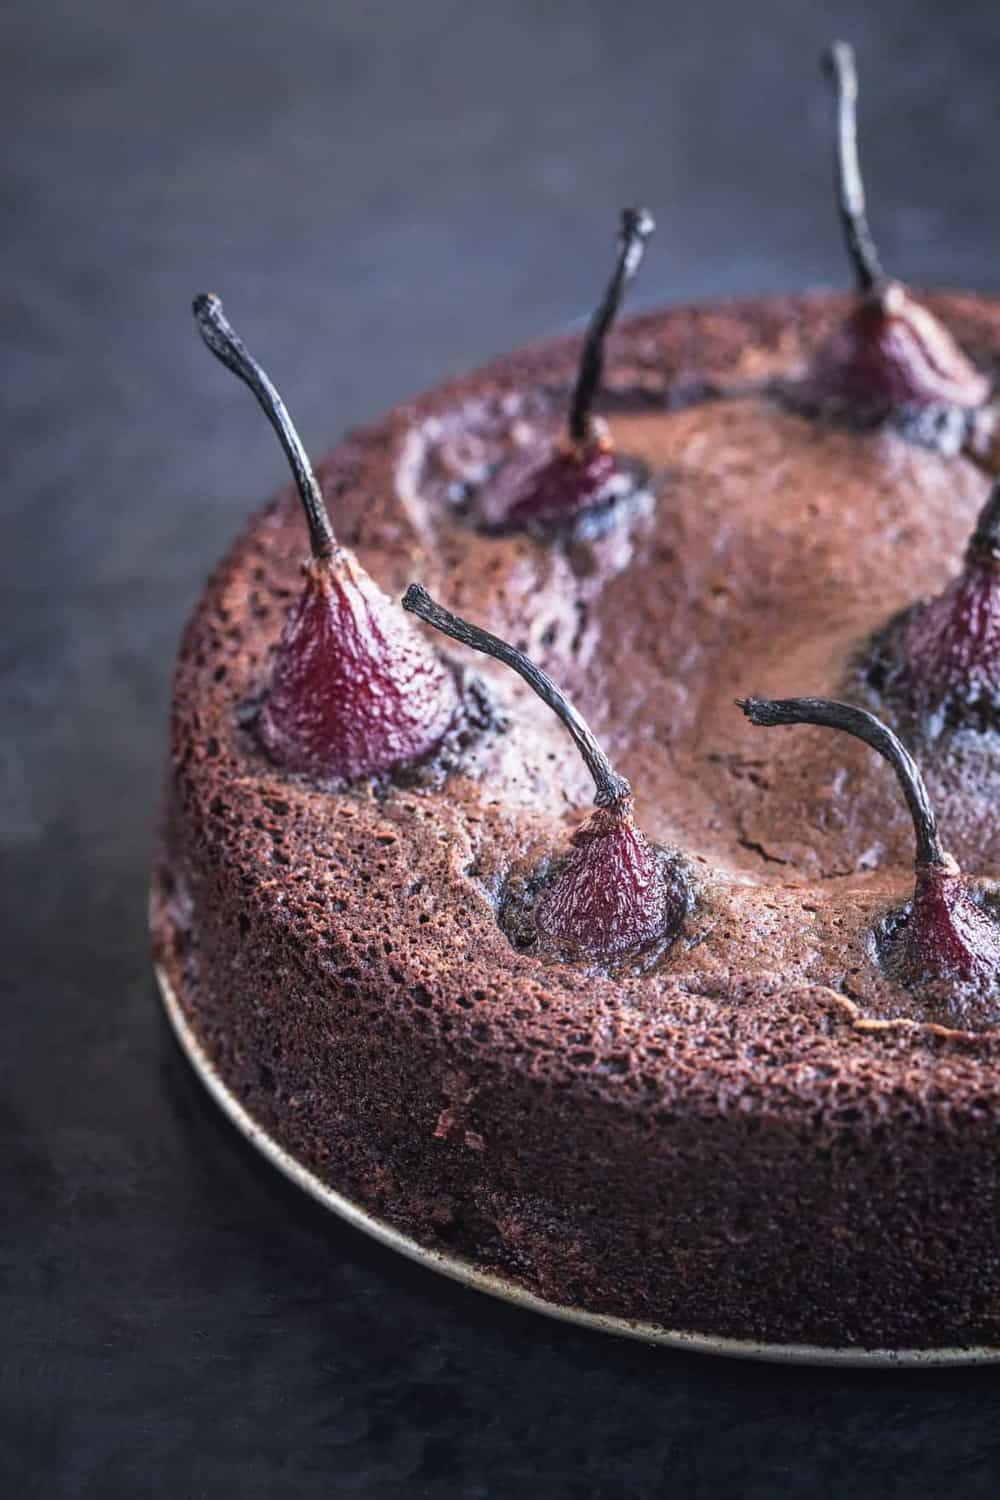 Spiced red wine poached pears in chocolate cake batter, post oven and out of springform pan. Side angle , 45 degree shot, right side of cake is cut off, on a black background.